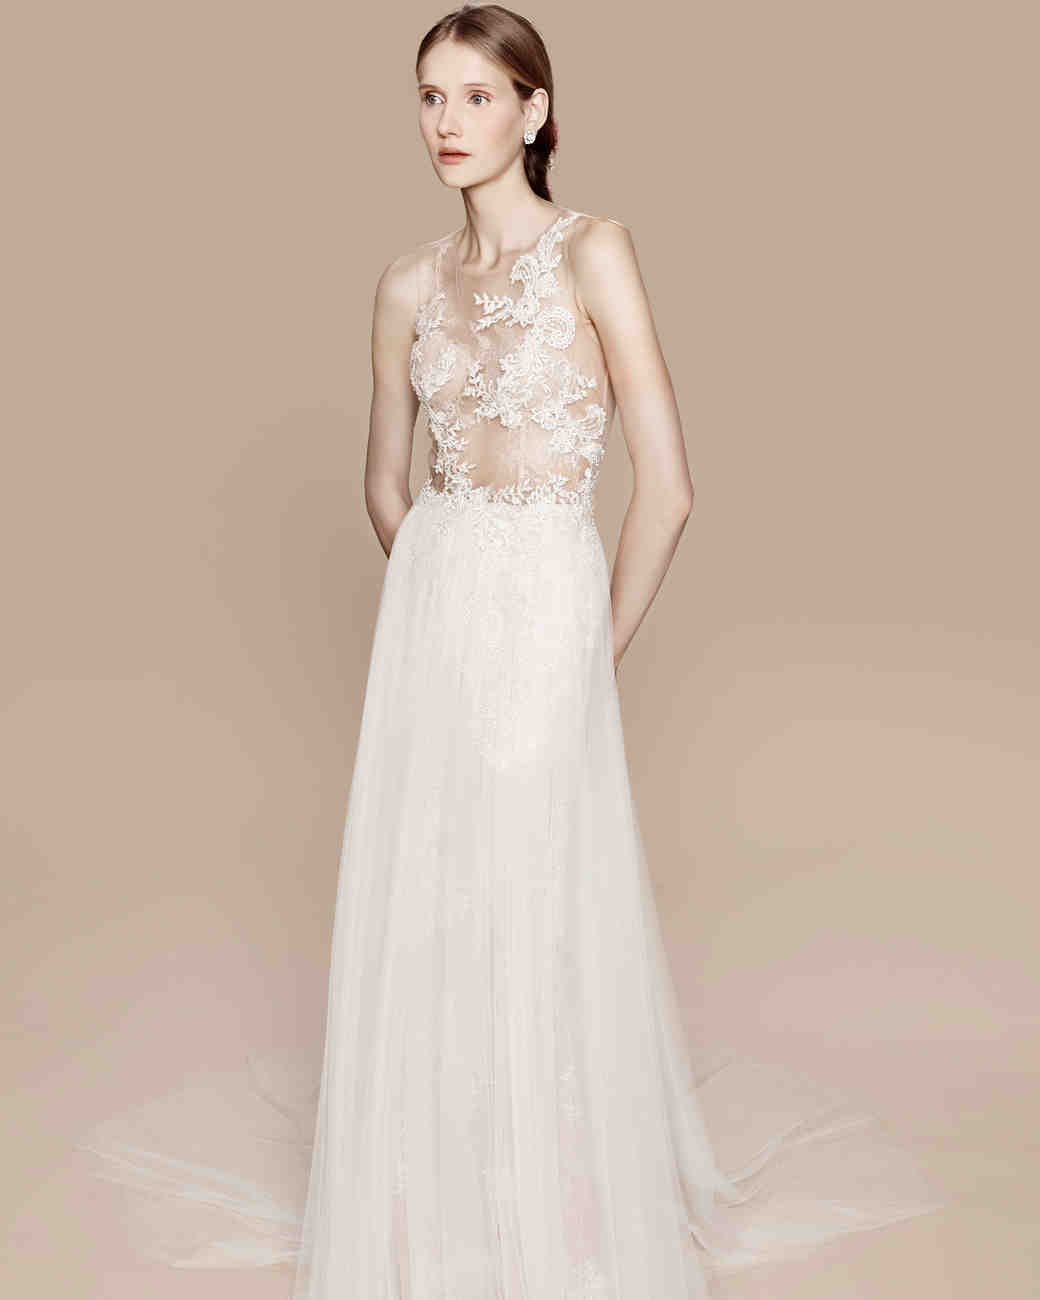 Bride Wedding Reception Dresses